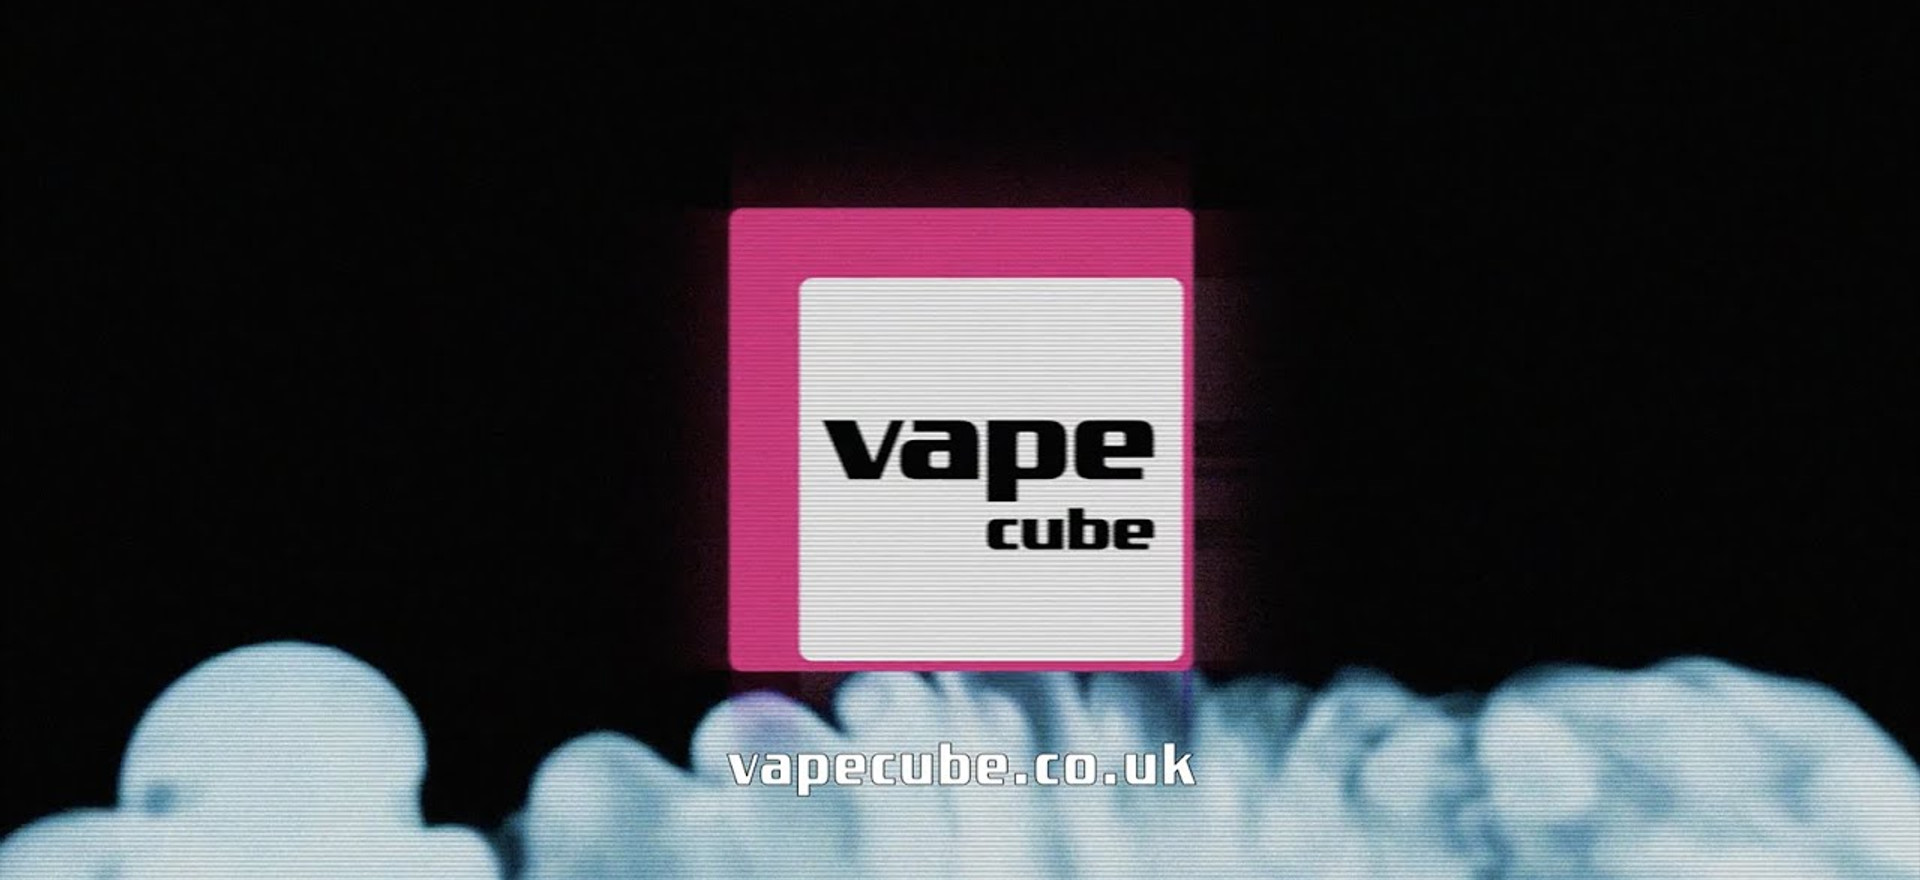 VAPE CUBE - Vape on the motorway